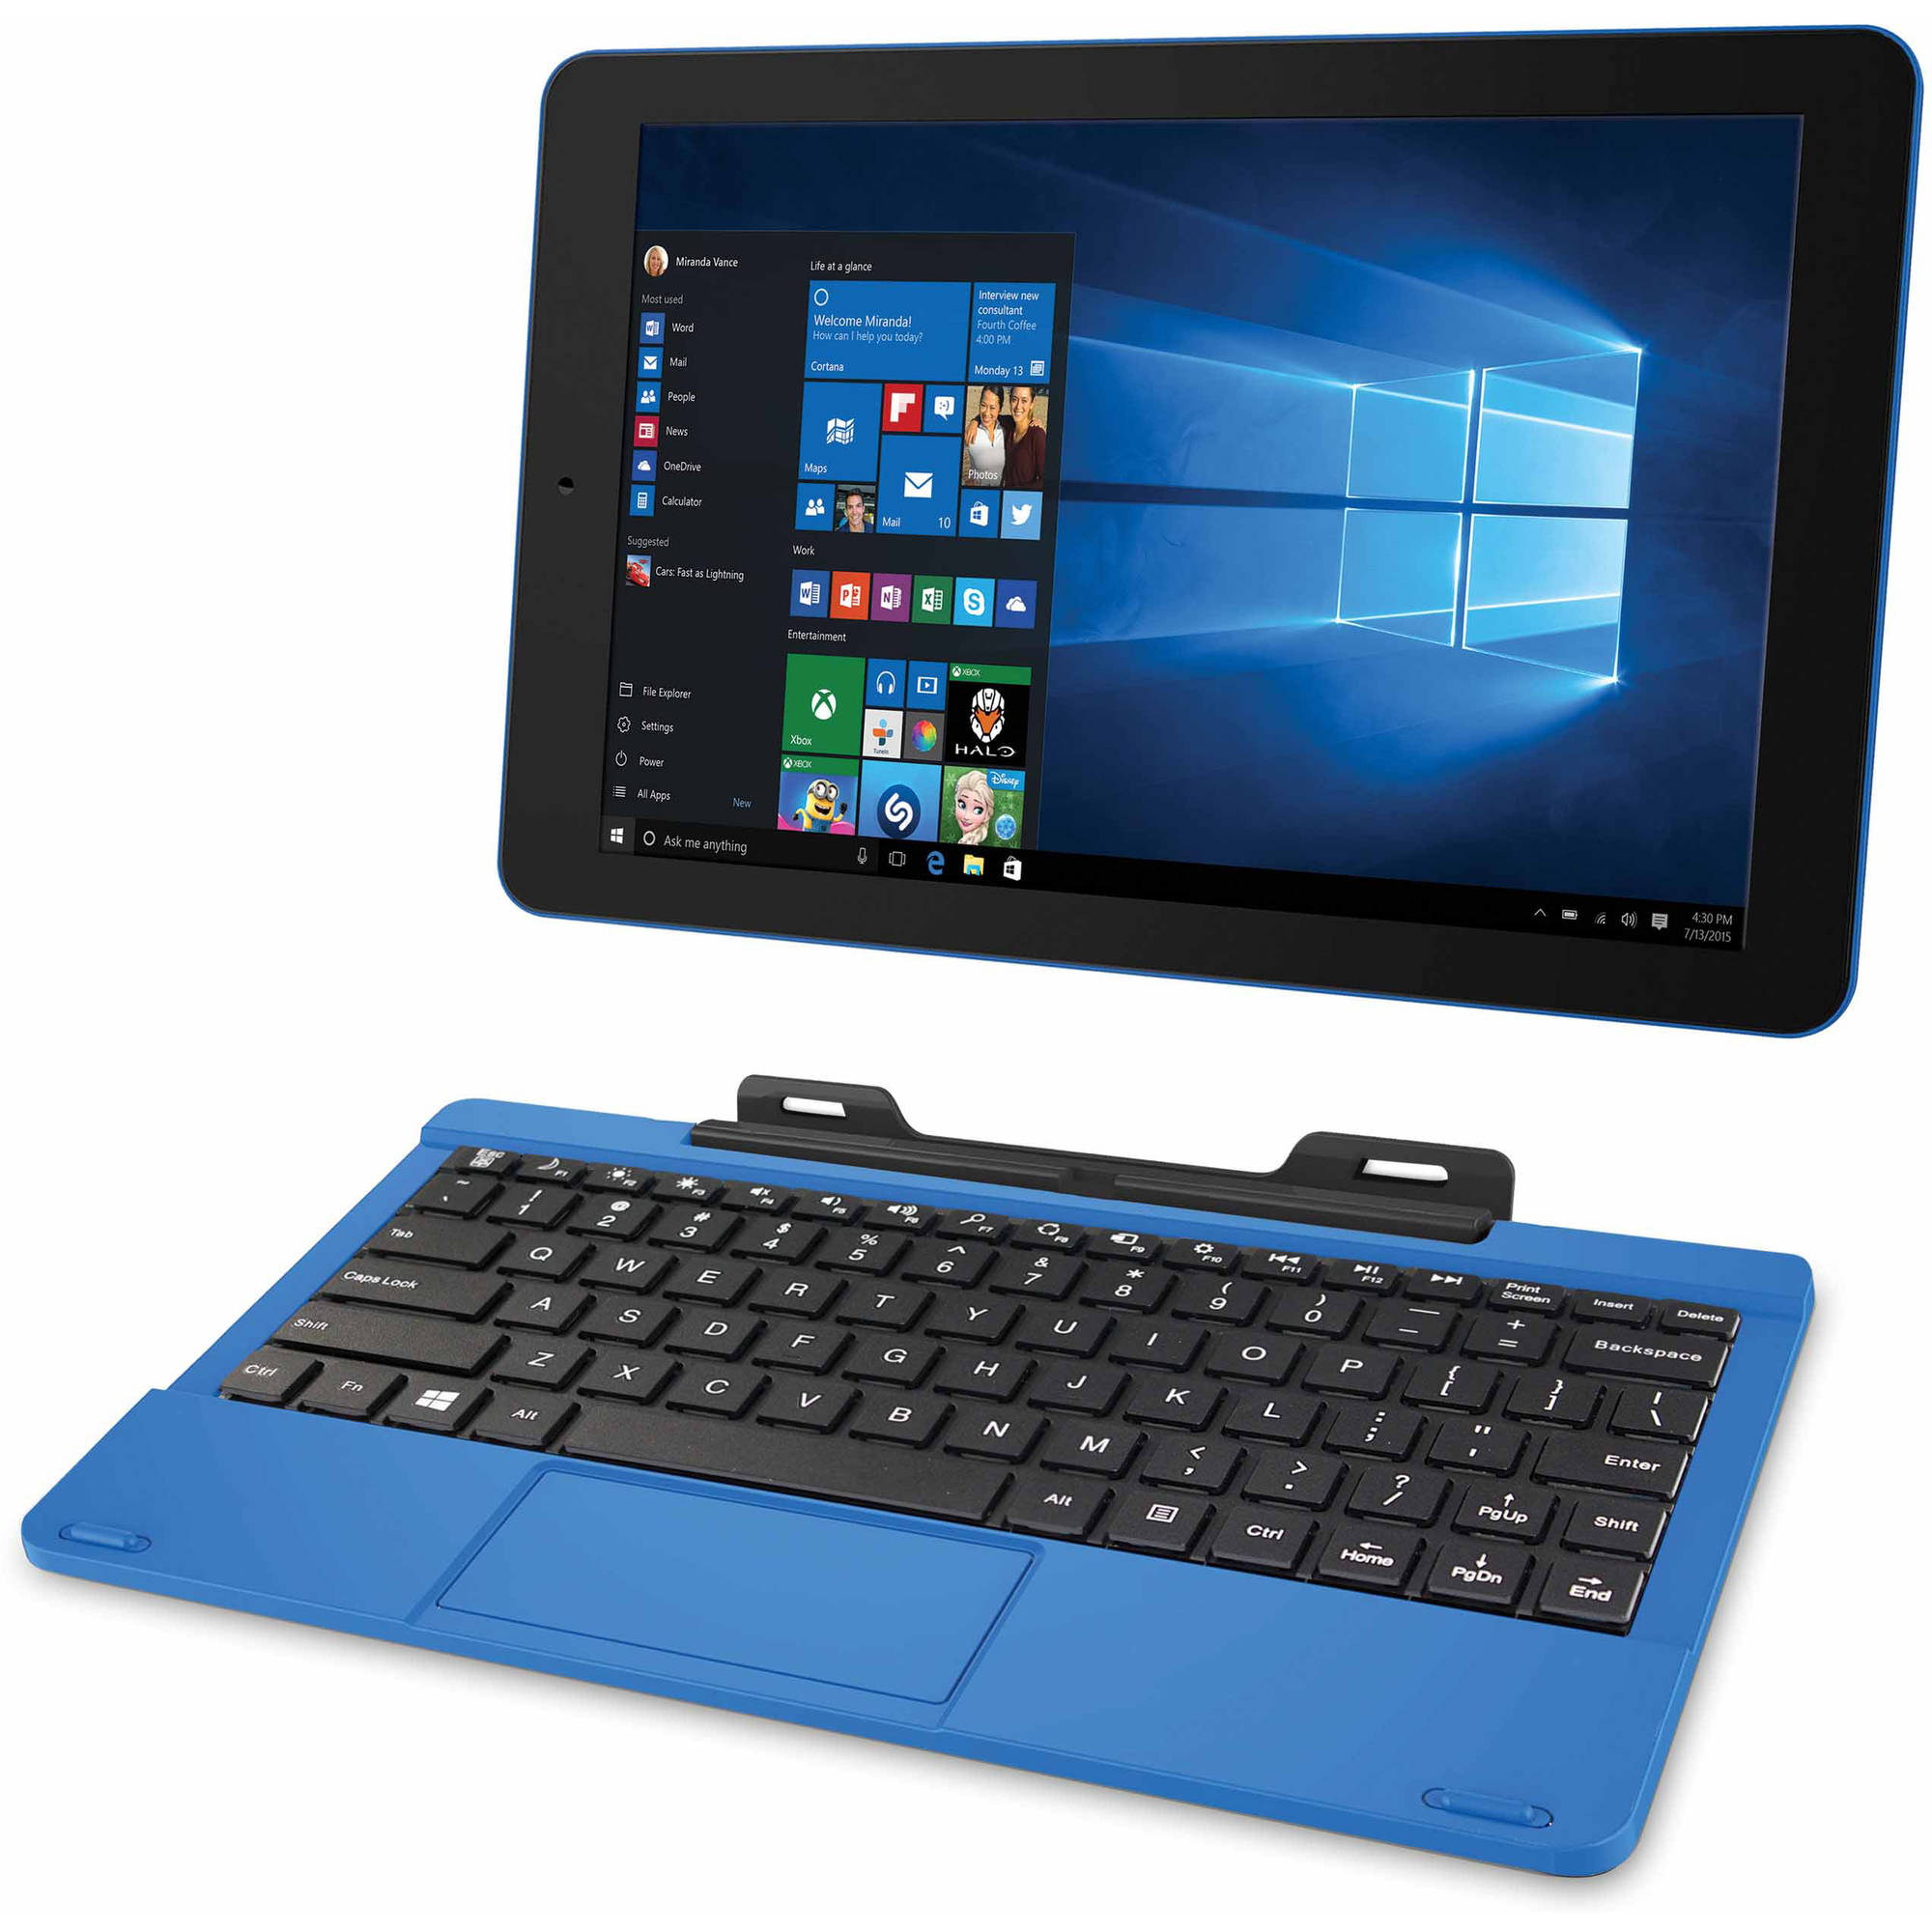 "RCA Cambio 10.1"" 2-in-1 Tablet 32GB Intel Atom Z3735F Quad-Core Processor Windows 10"